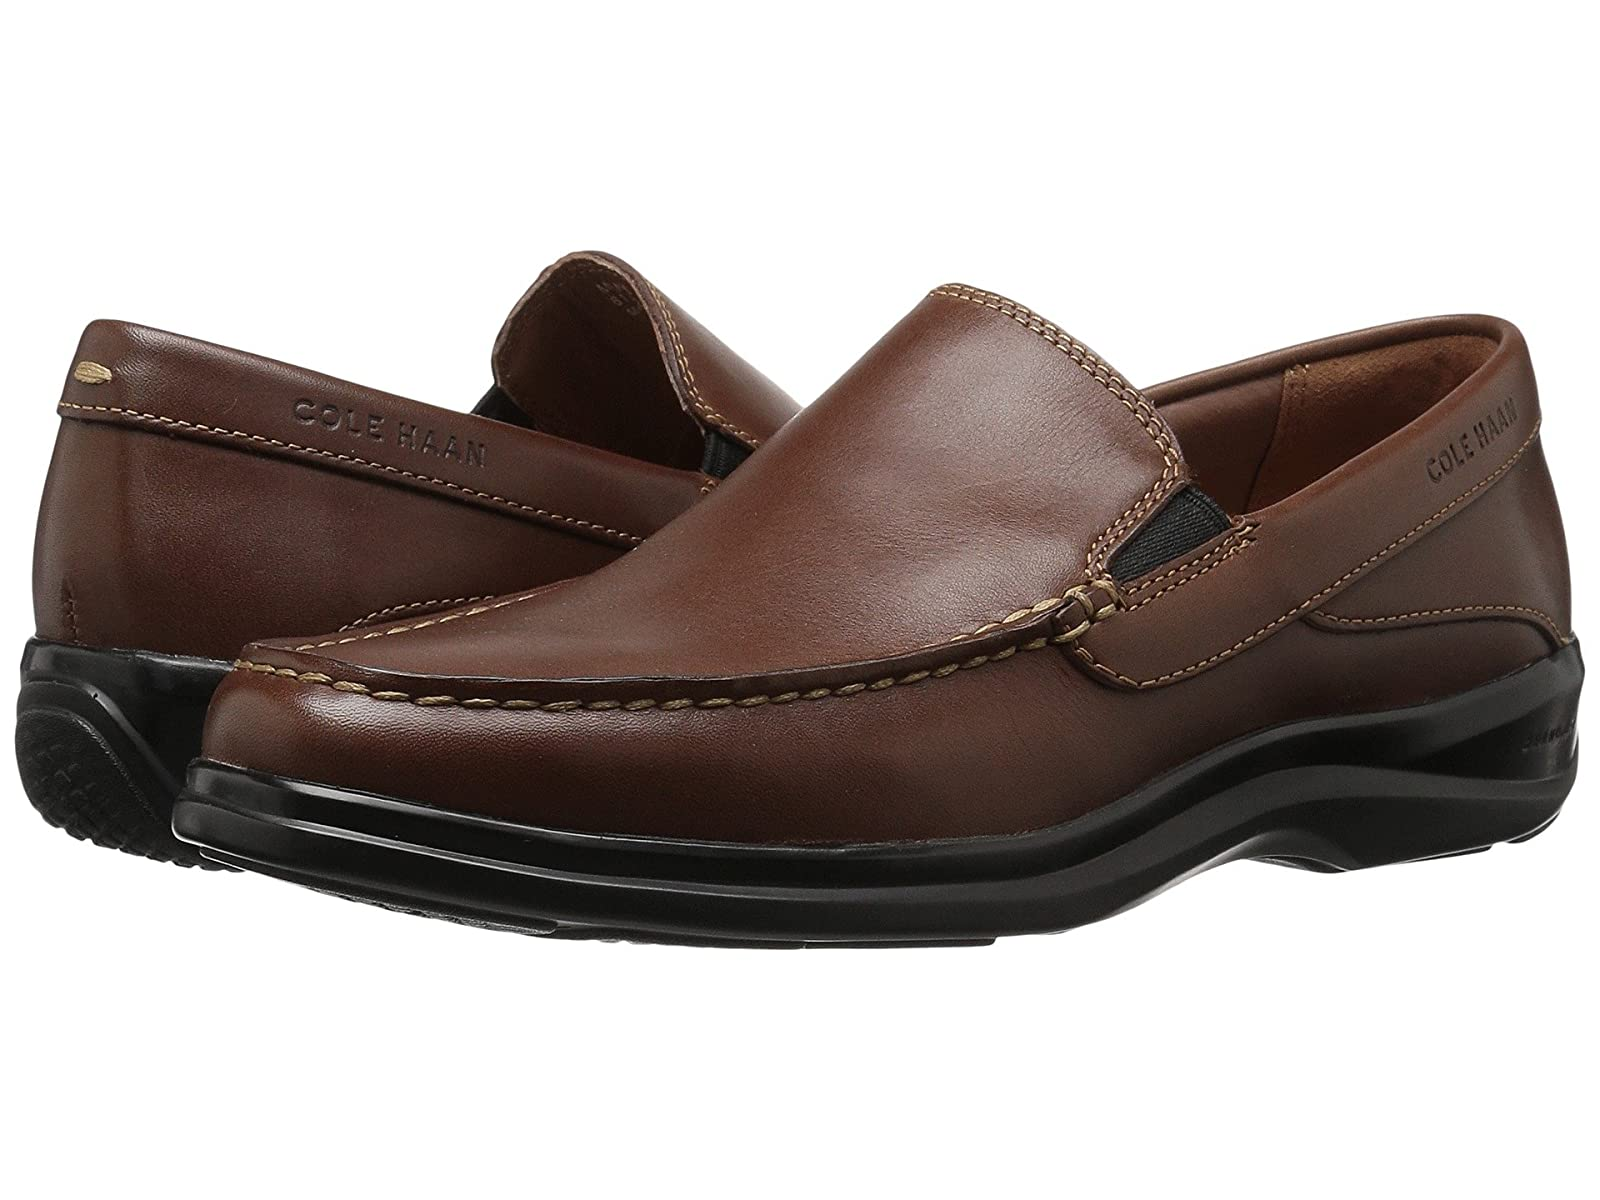 Cole Haan Santa Barbara Twin Gore IIAtmospheric grades have affordable shoes